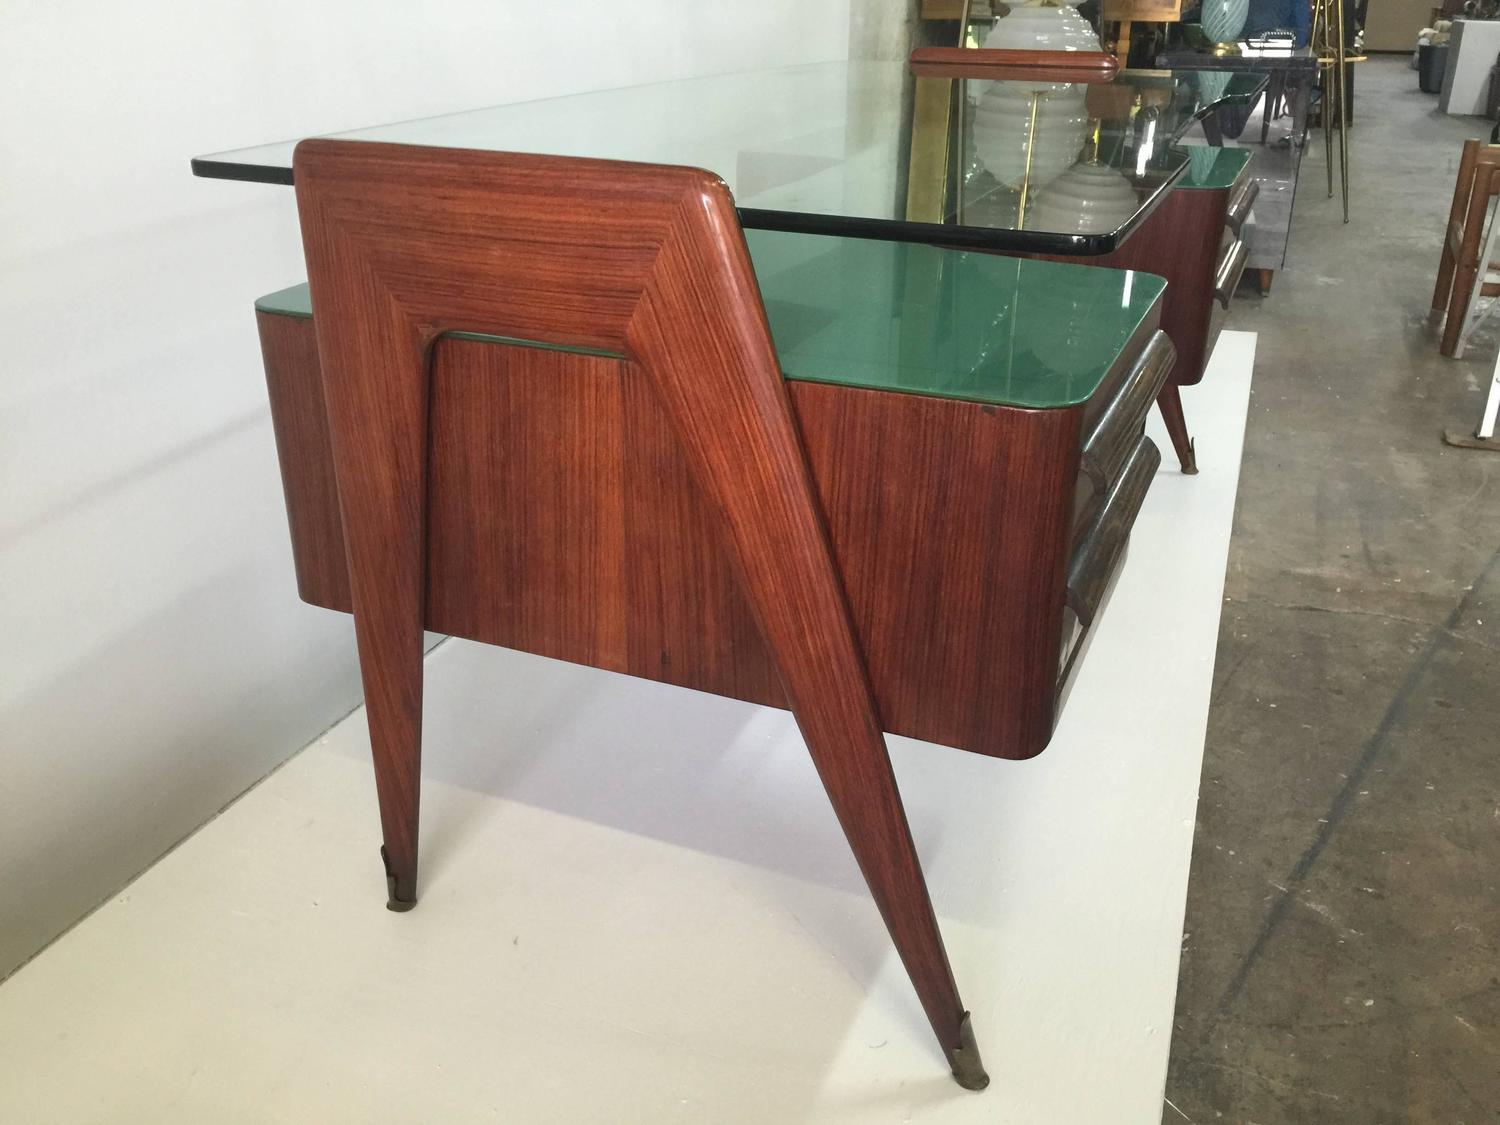 Rosewood desk by paolo buffa with floating glass top for for Floating desk for sale